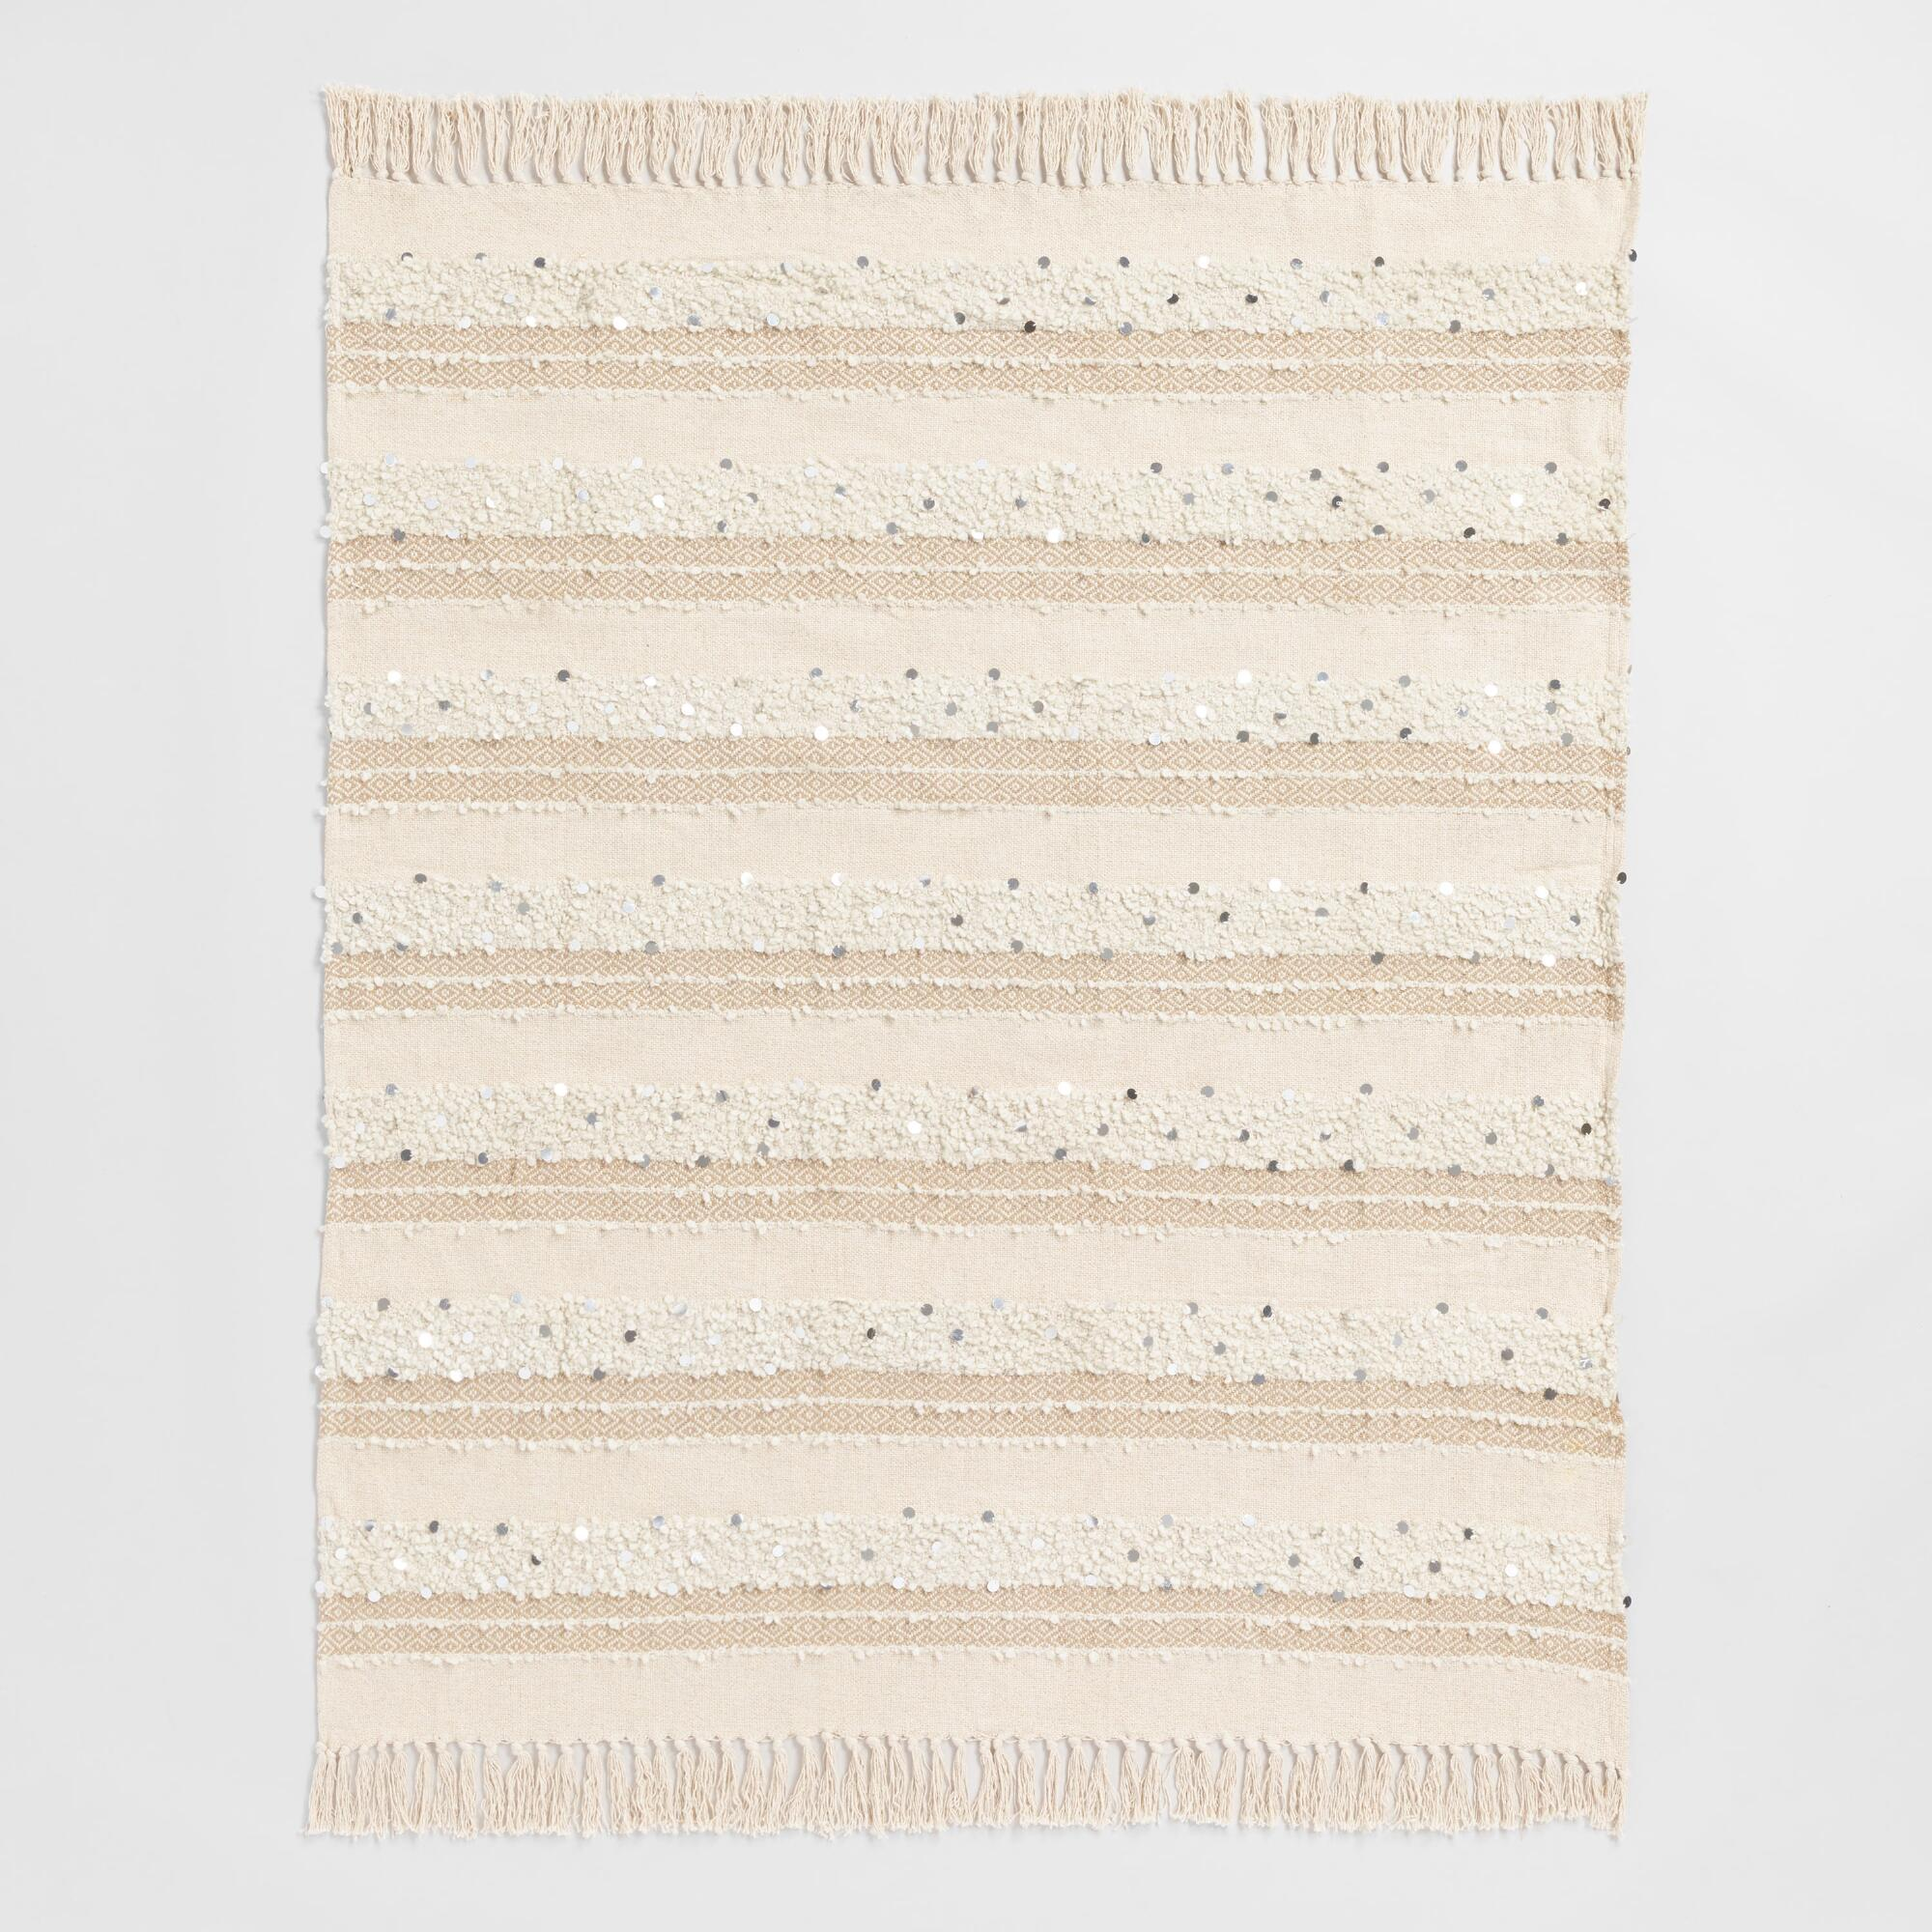 Decorative Throw Blankets - Chenille, Faux Fur, Knit & Fringe ...